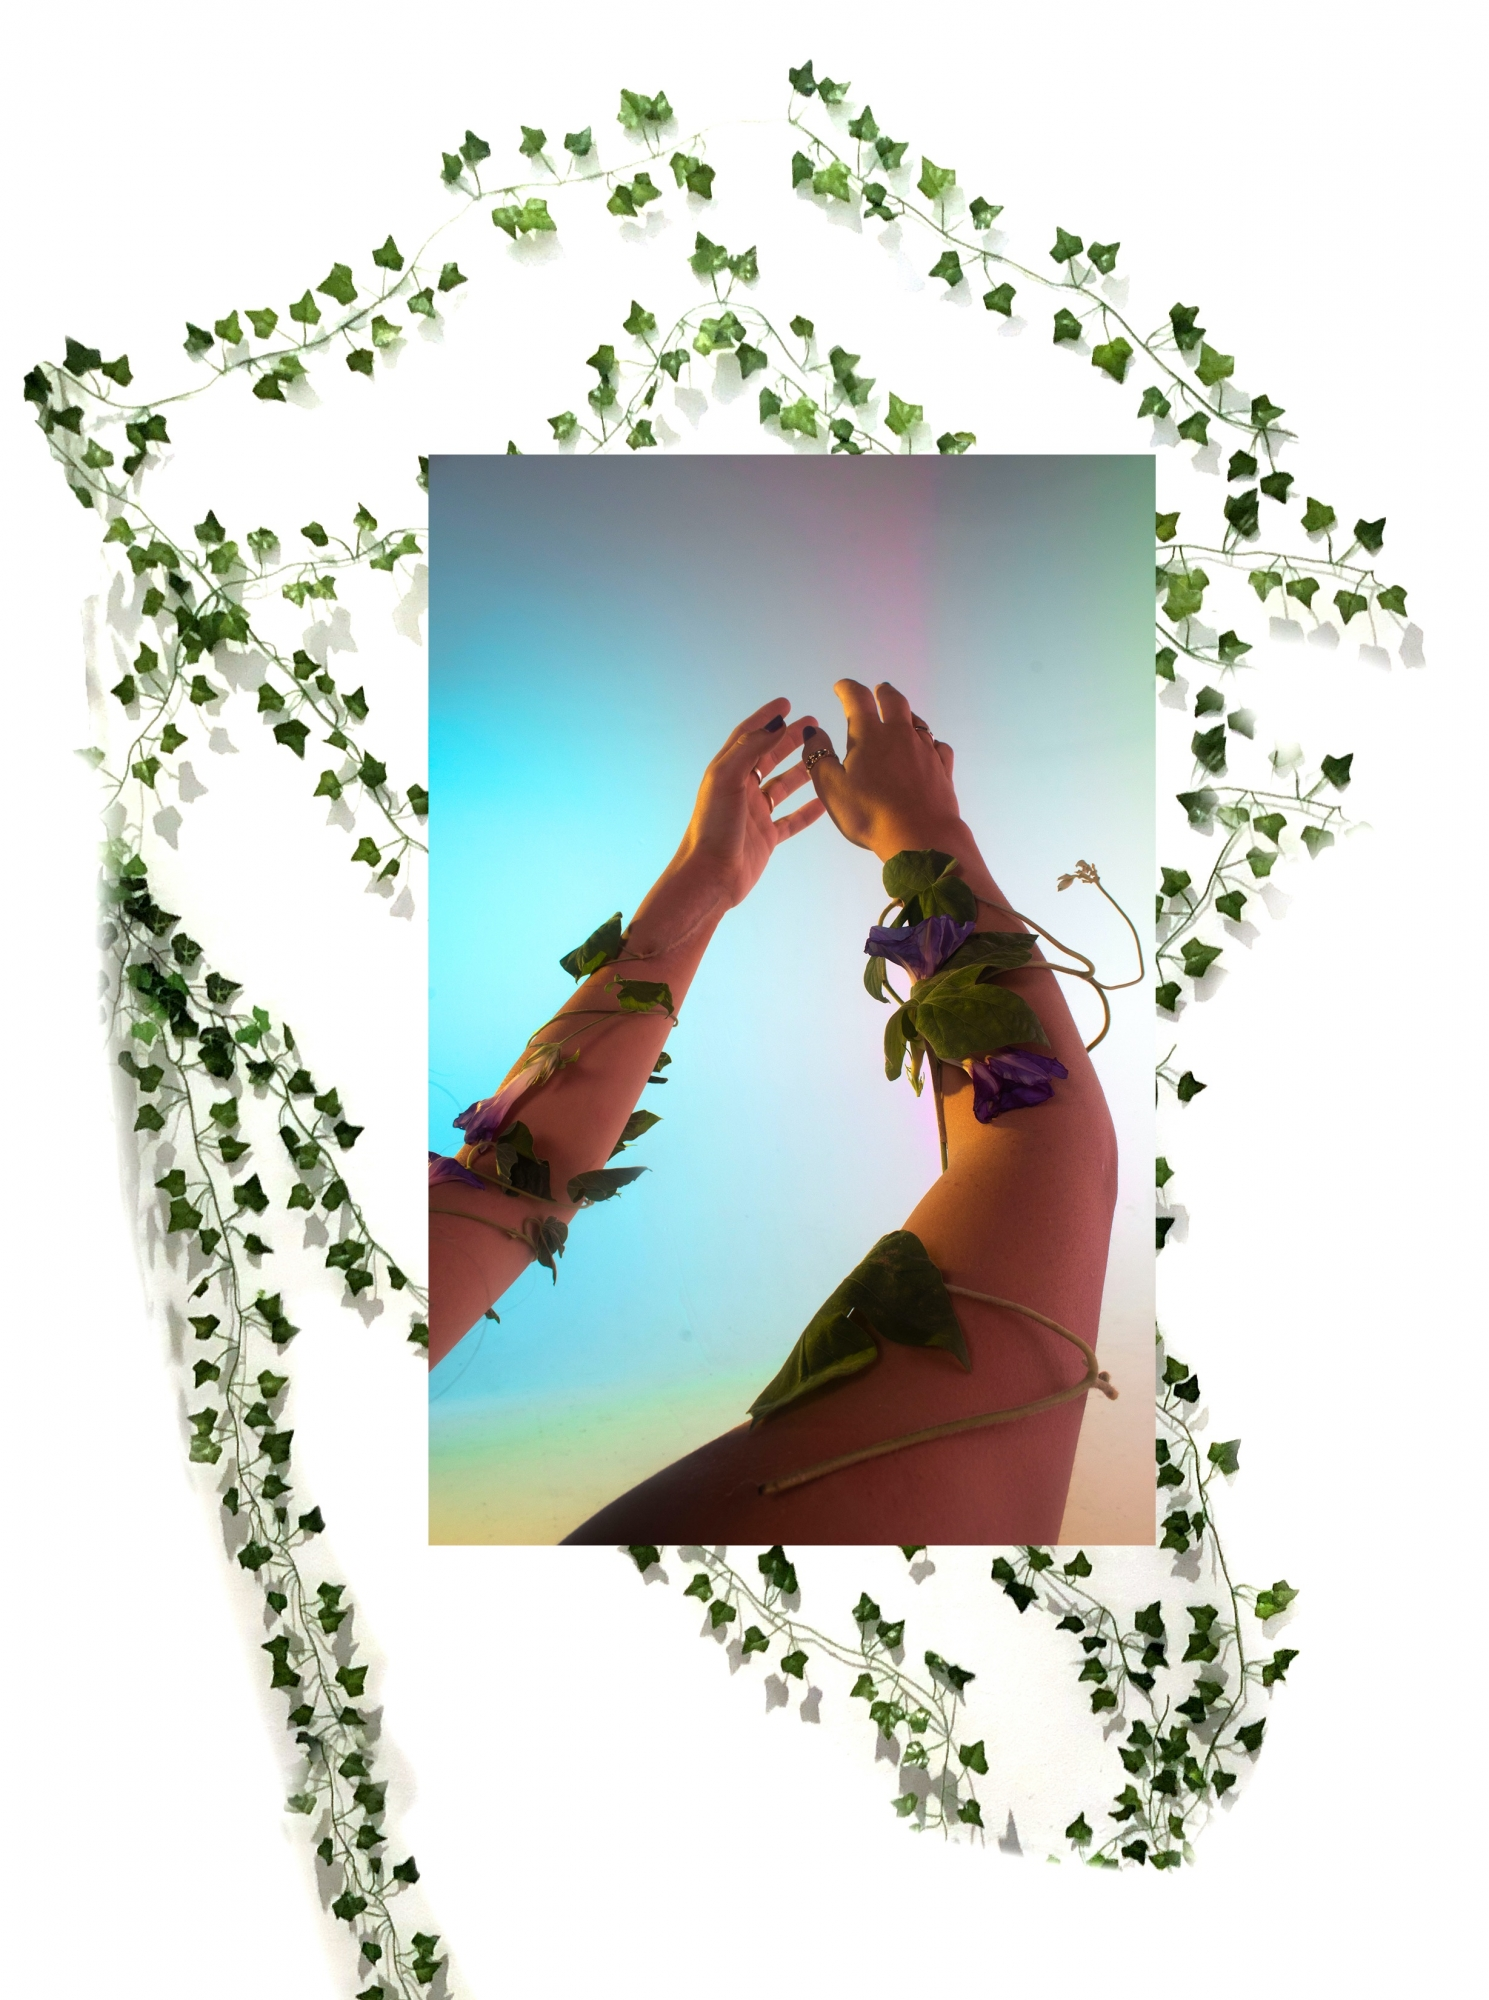 Digital composite image of two arms with ivy twisted around them and ivy vines in background.